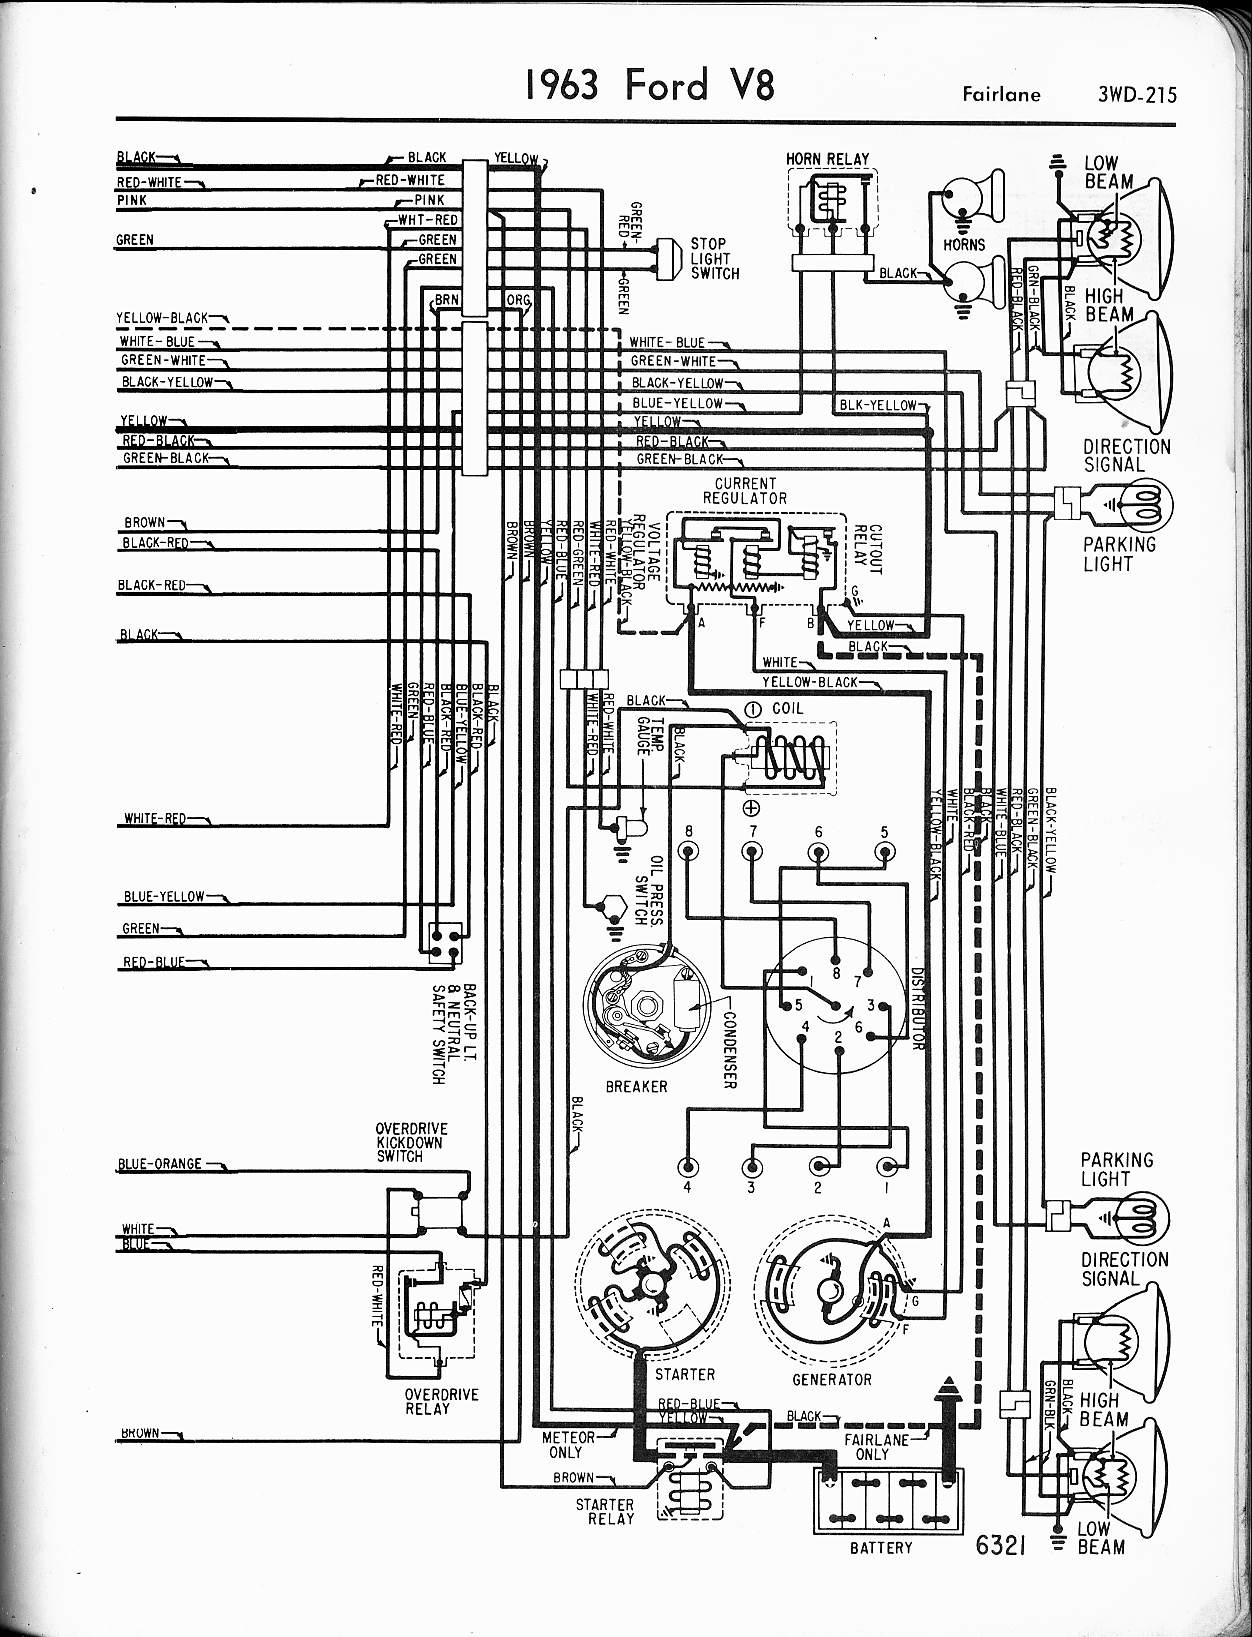 1962 ford fairlane wiring diagram